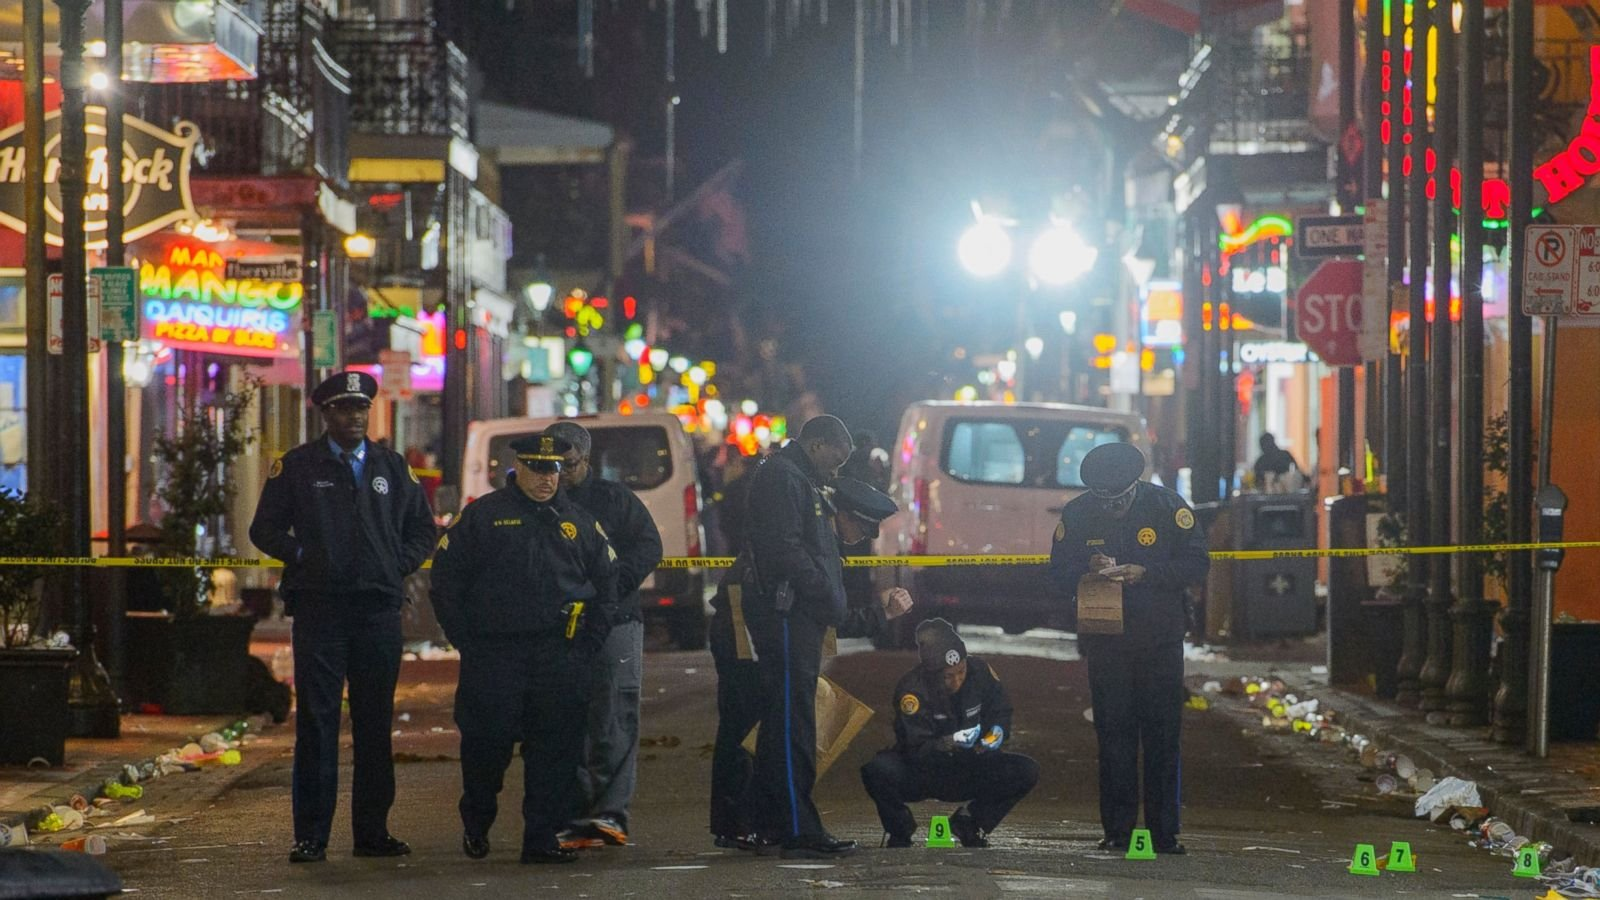 Popular Tourist Destination in New Orleans Site of Fatal Shooting